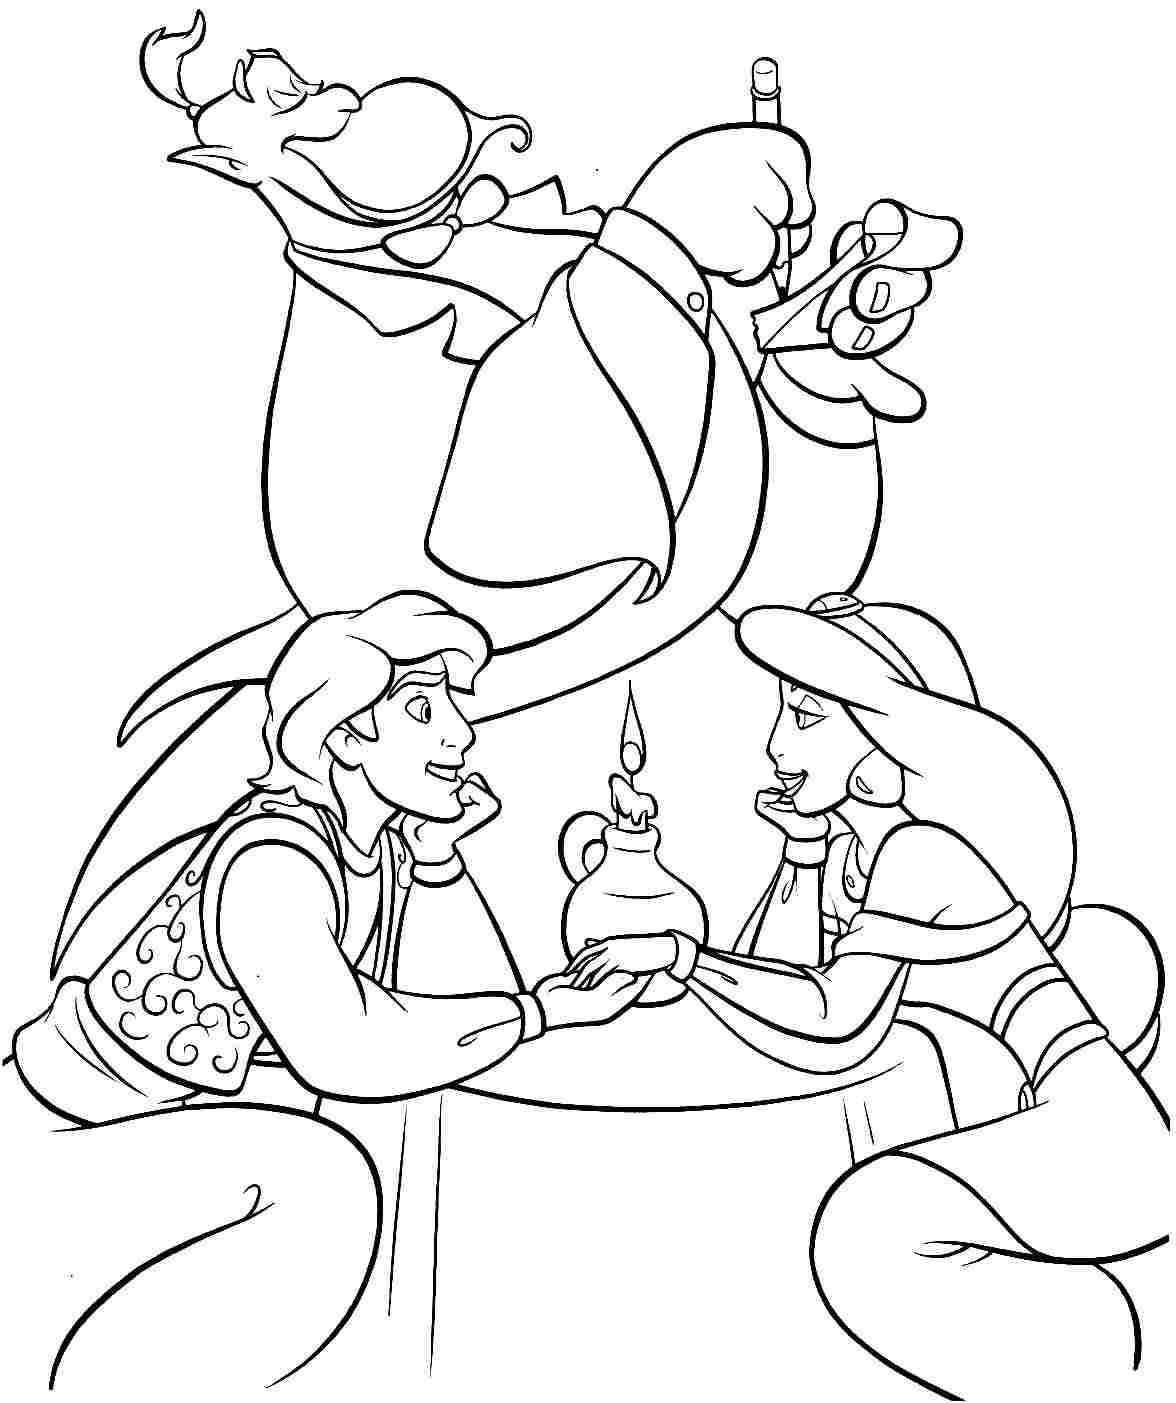 Free Printable Disney Princess Aladdin Colouring Pages For